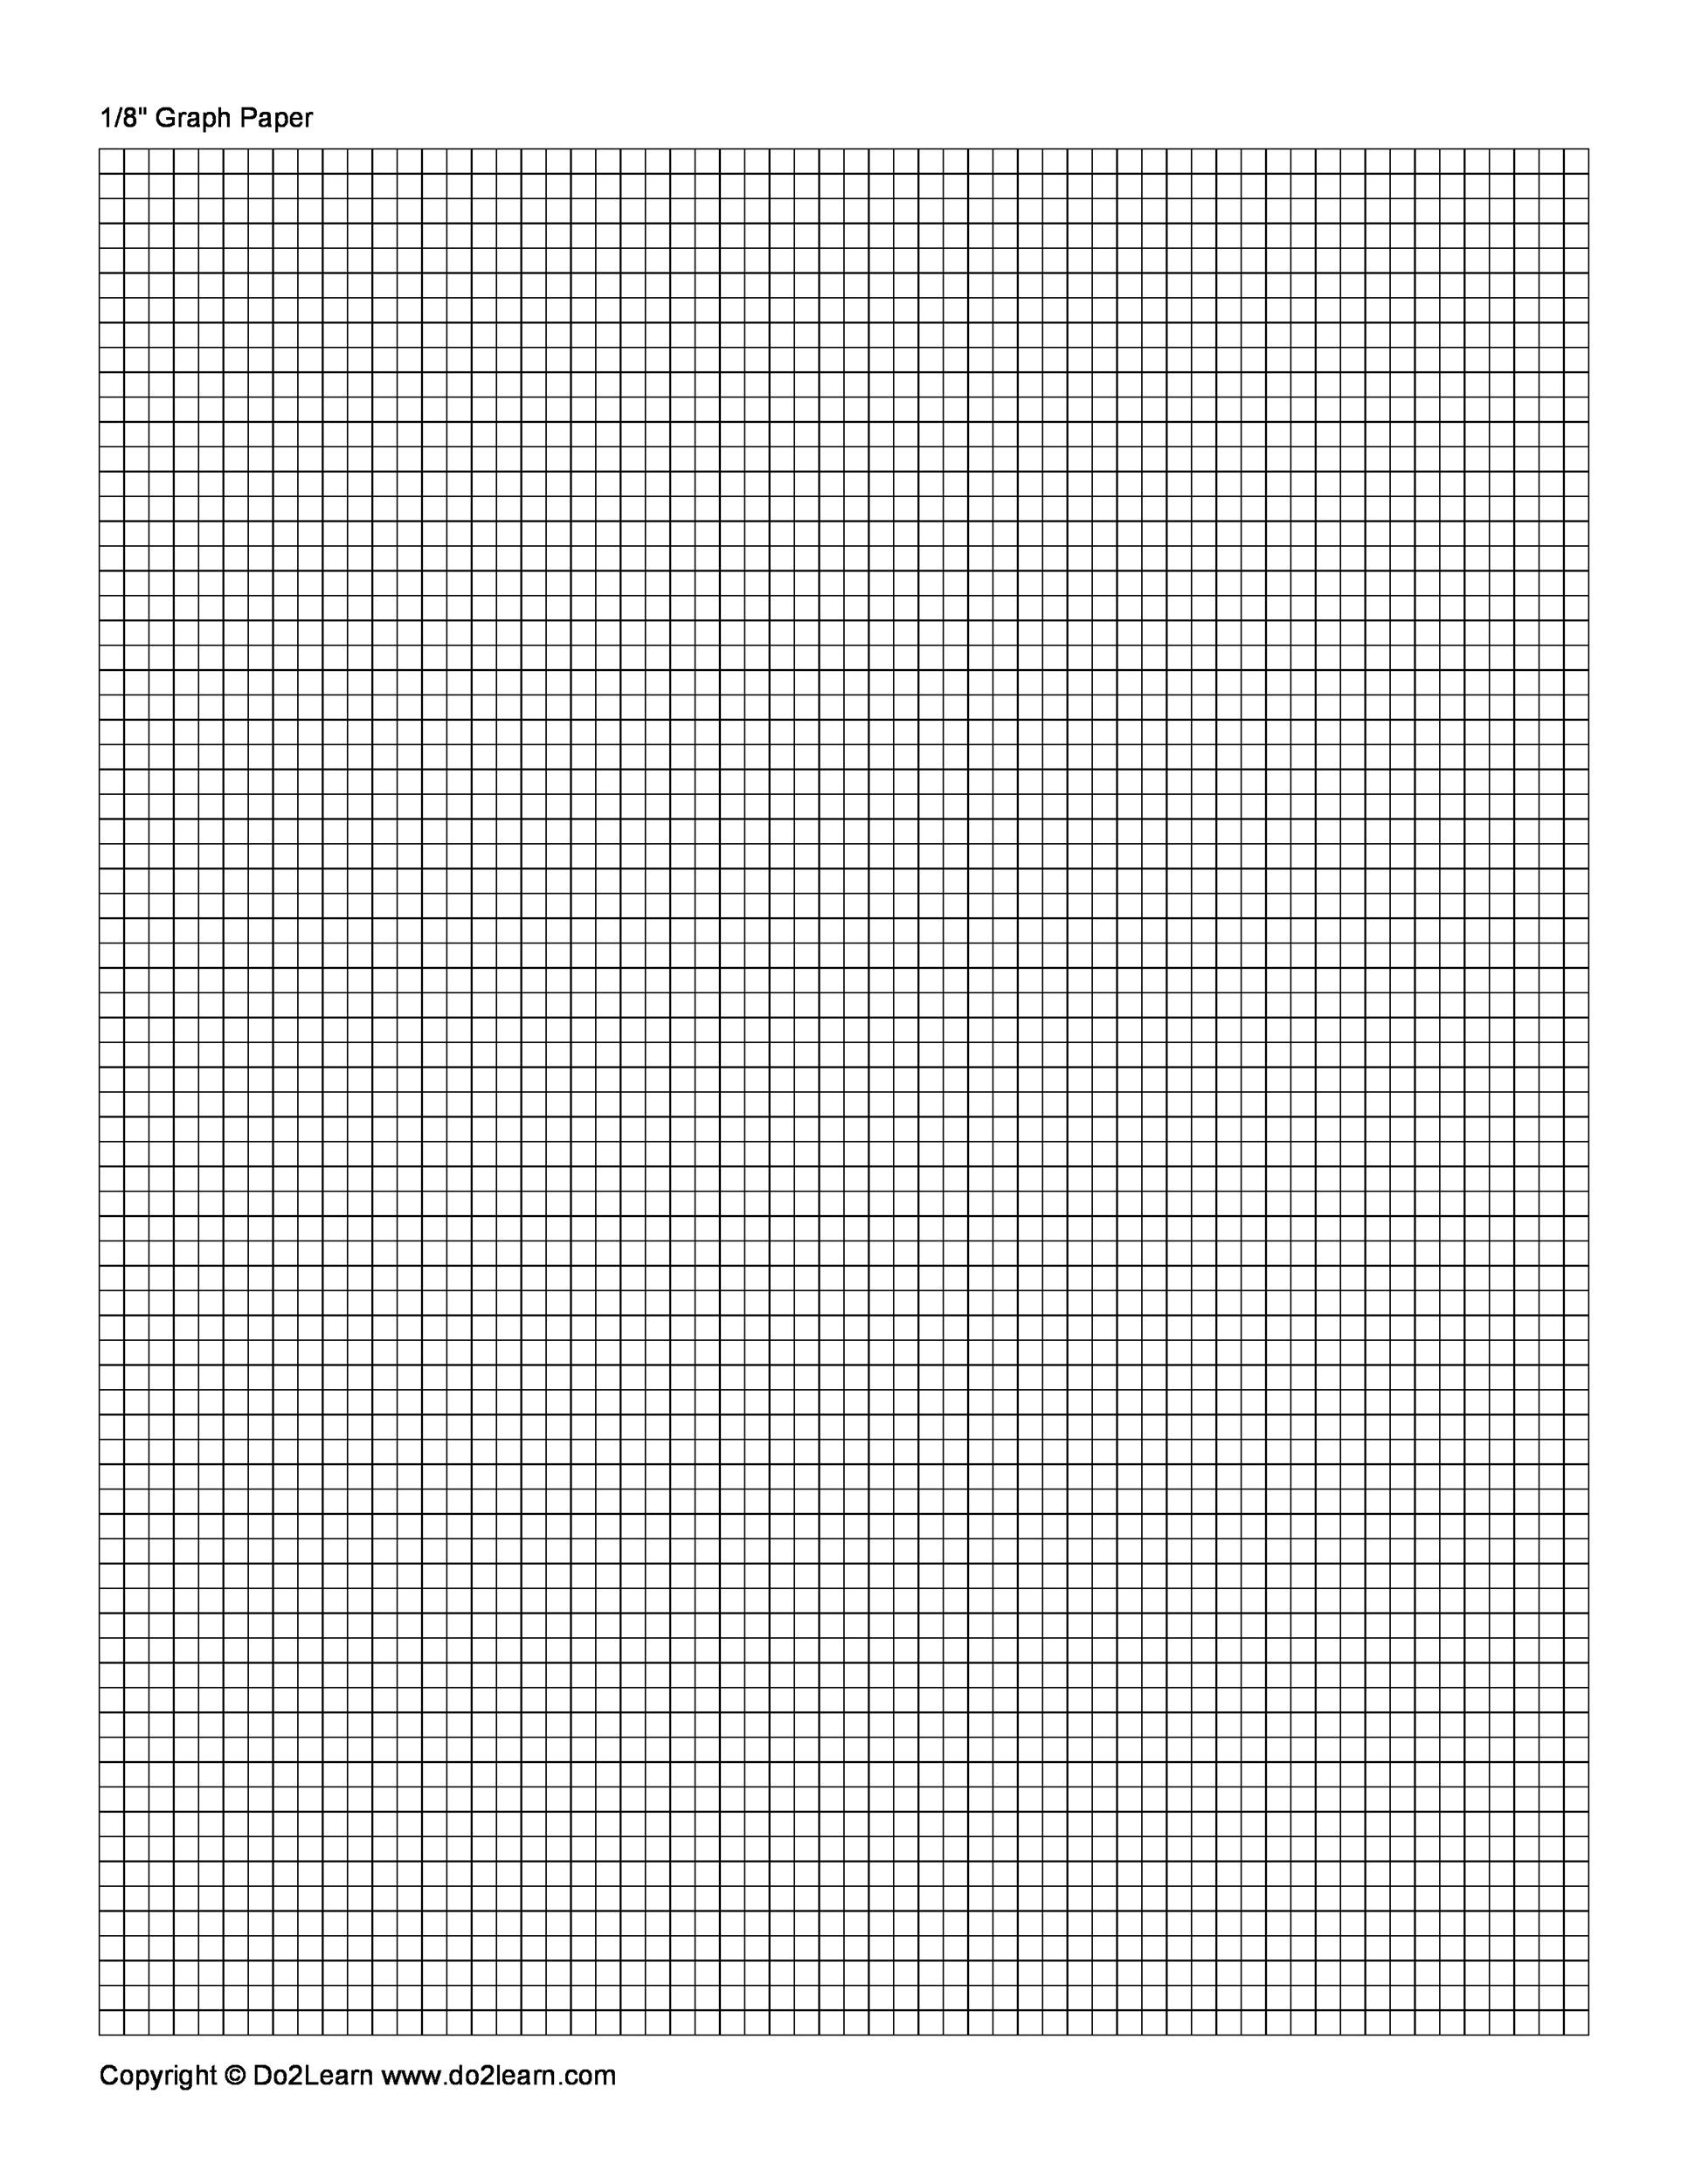 Printable Graph Paper Template 01  Print Loose Leaf Paper